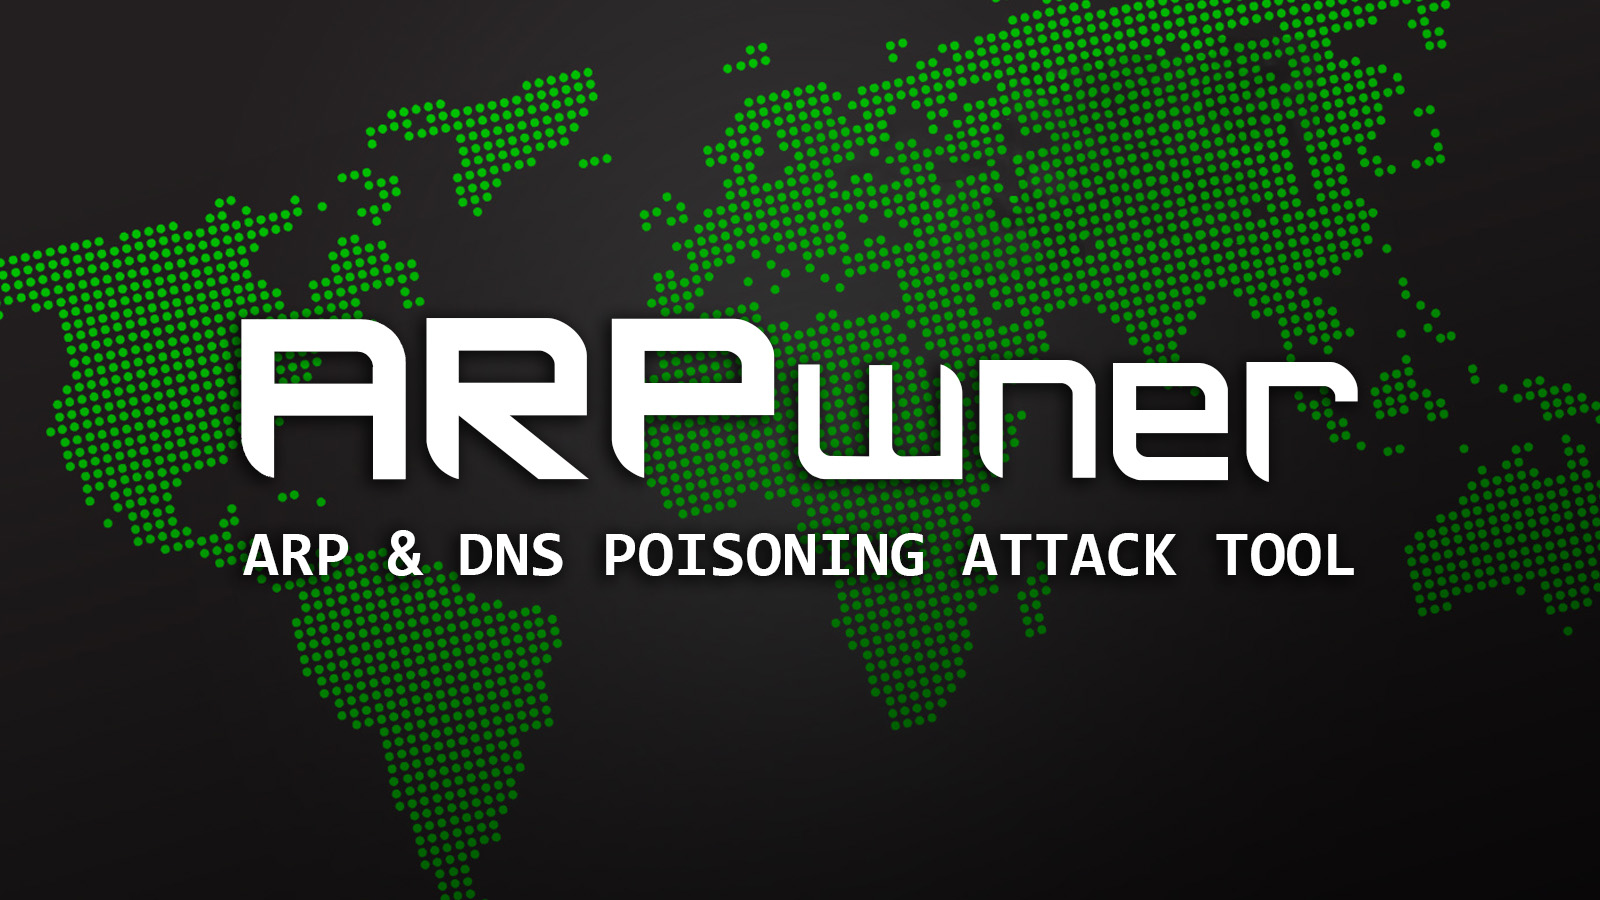 ARPwner - ARP & DNS Poisoning Attack Tool - Effect Hacking